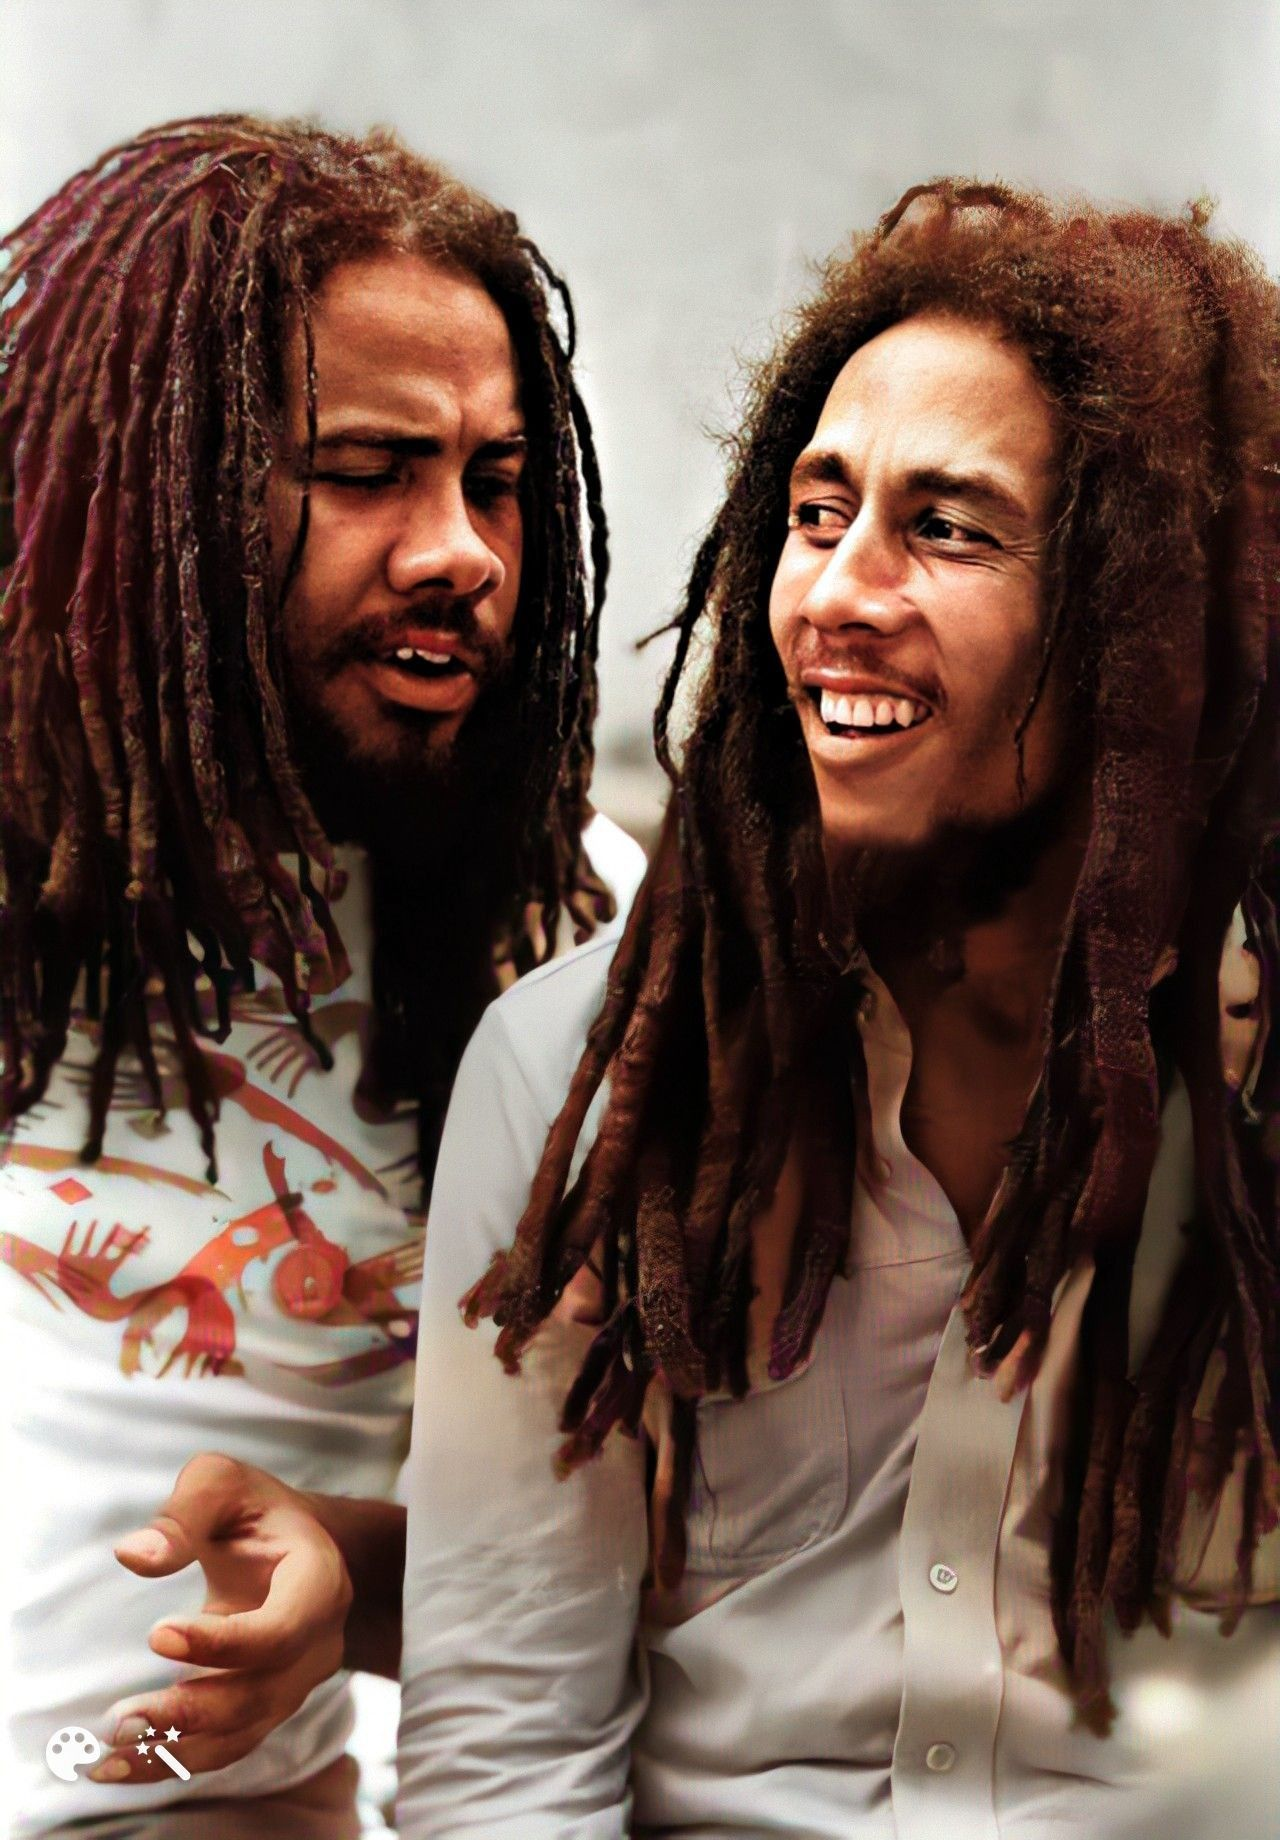 1980 Jamaica S Top Two Artists Jacob Miller Of Inner Circle Bob Marley Of The Wailers Bob Marley Bob Marley Pictures Bob Marley Legend